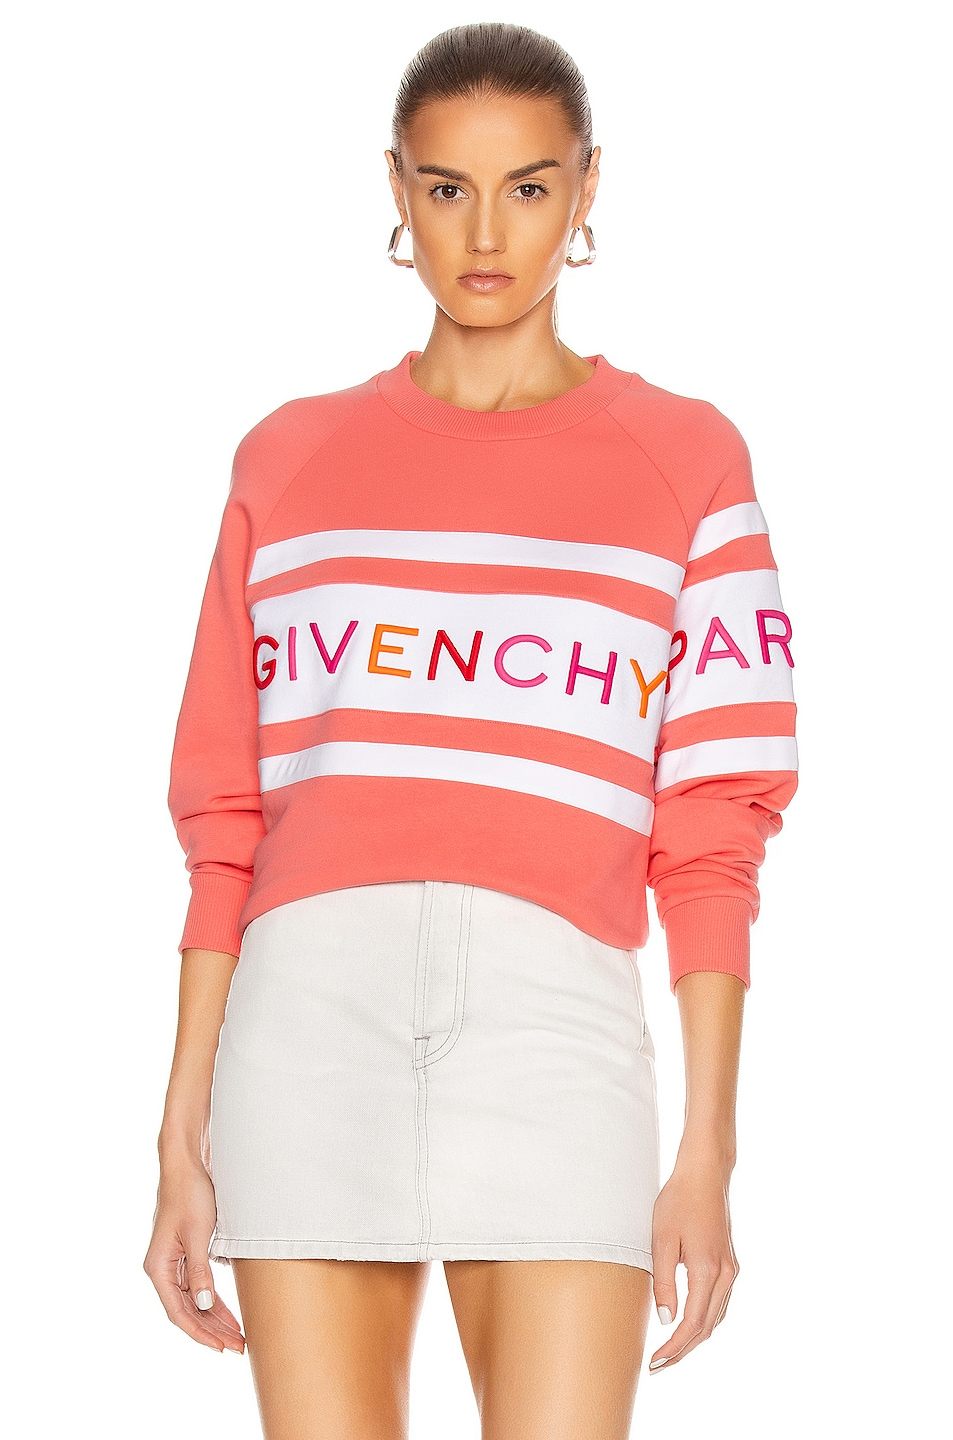 Image 1 of Givenchy Raglan Long Sleeve Sweatshirt in Coral & White